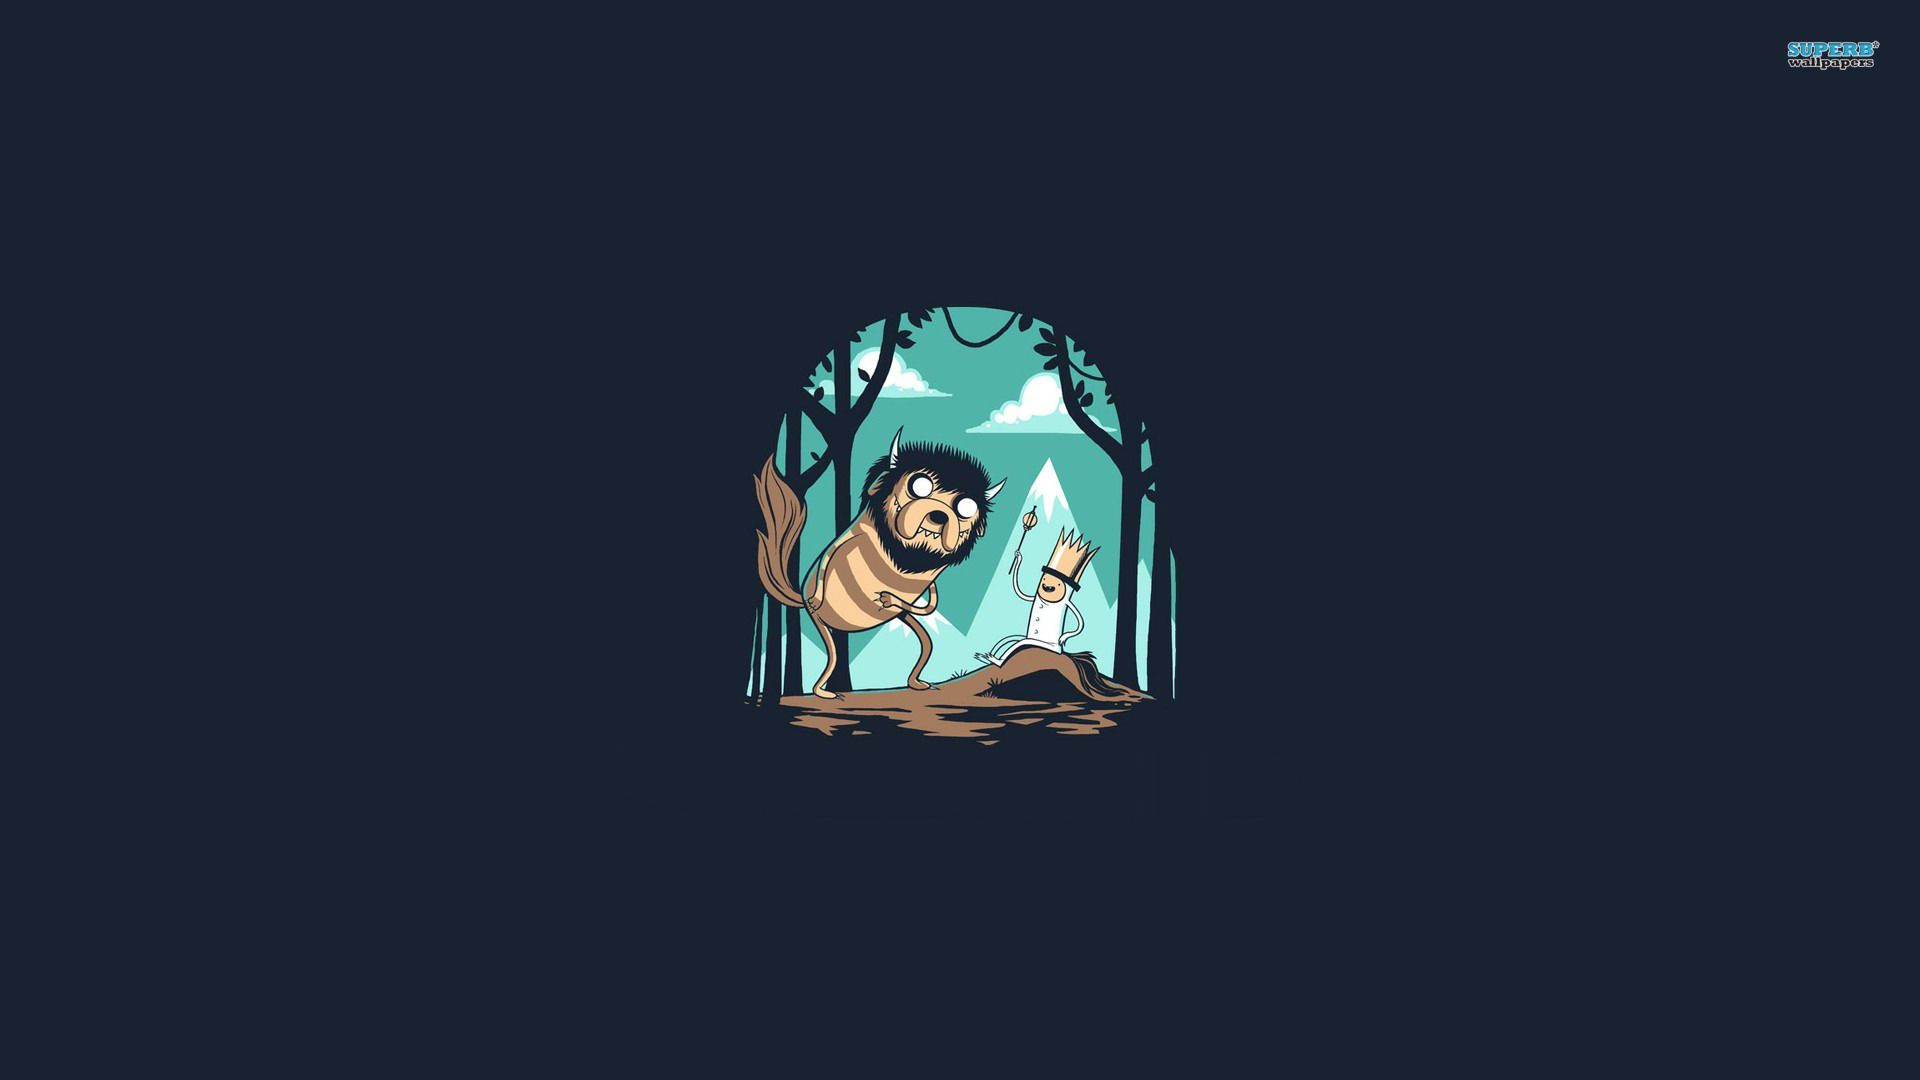 adventure time wallpapers download - photo #27